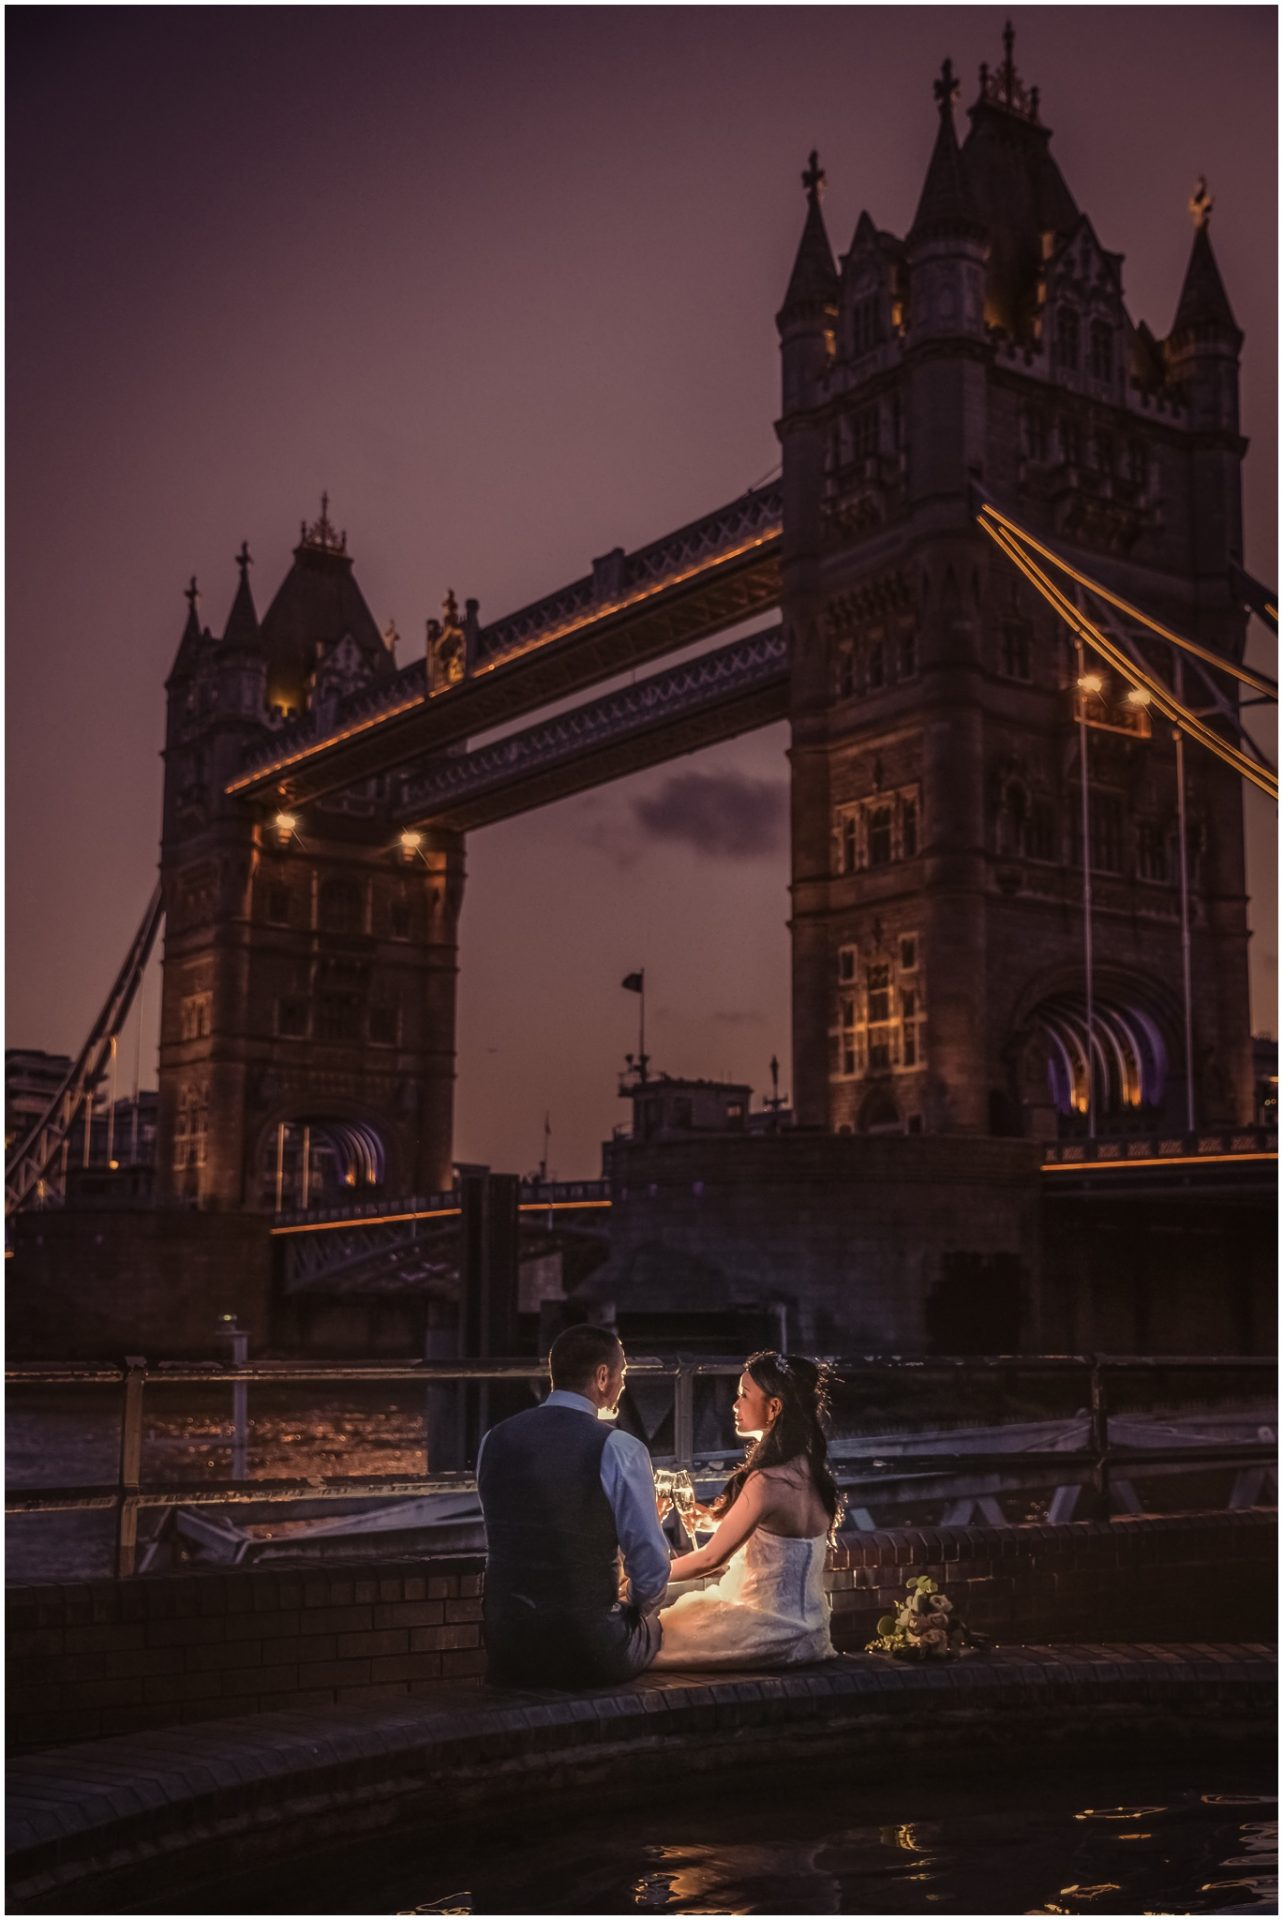 Evening-shot-of-bride-and-groom-drinking-champagne-near-tower-bridge-London